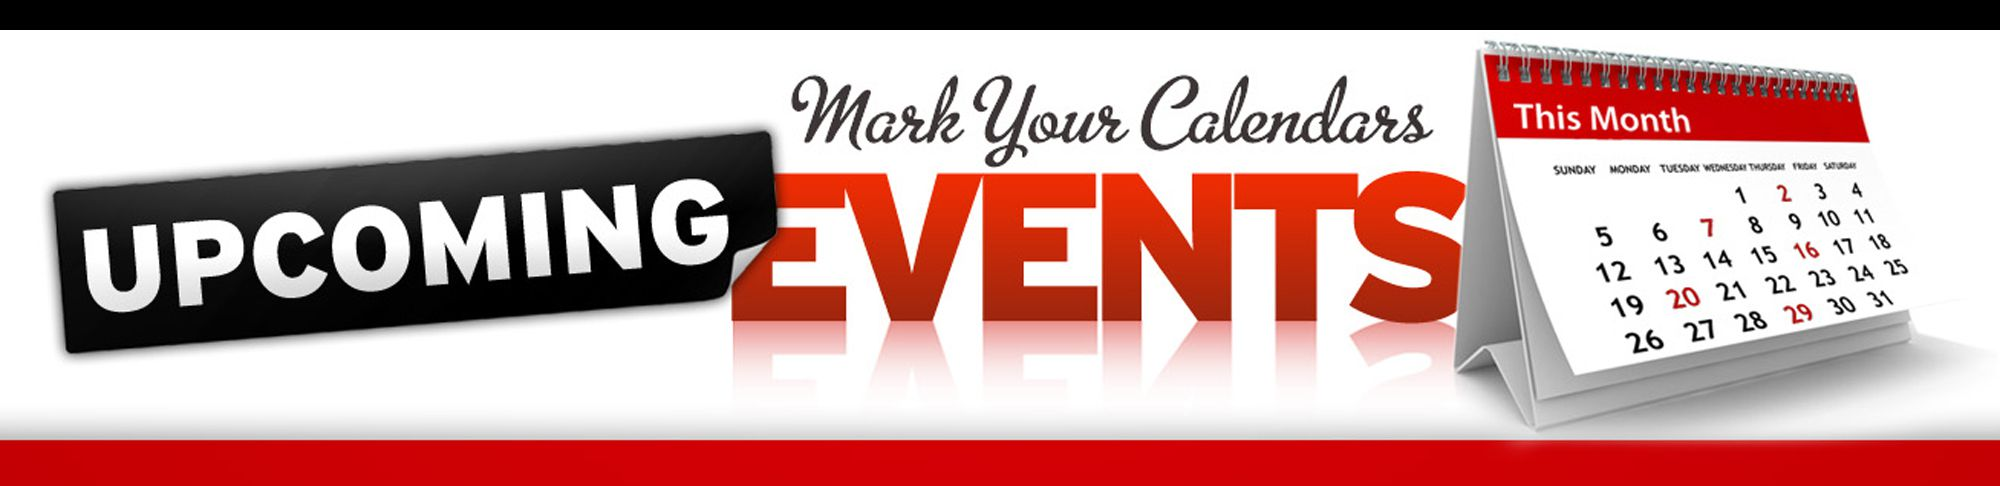 Announcement clipart upcoming event. Events images photos pictures